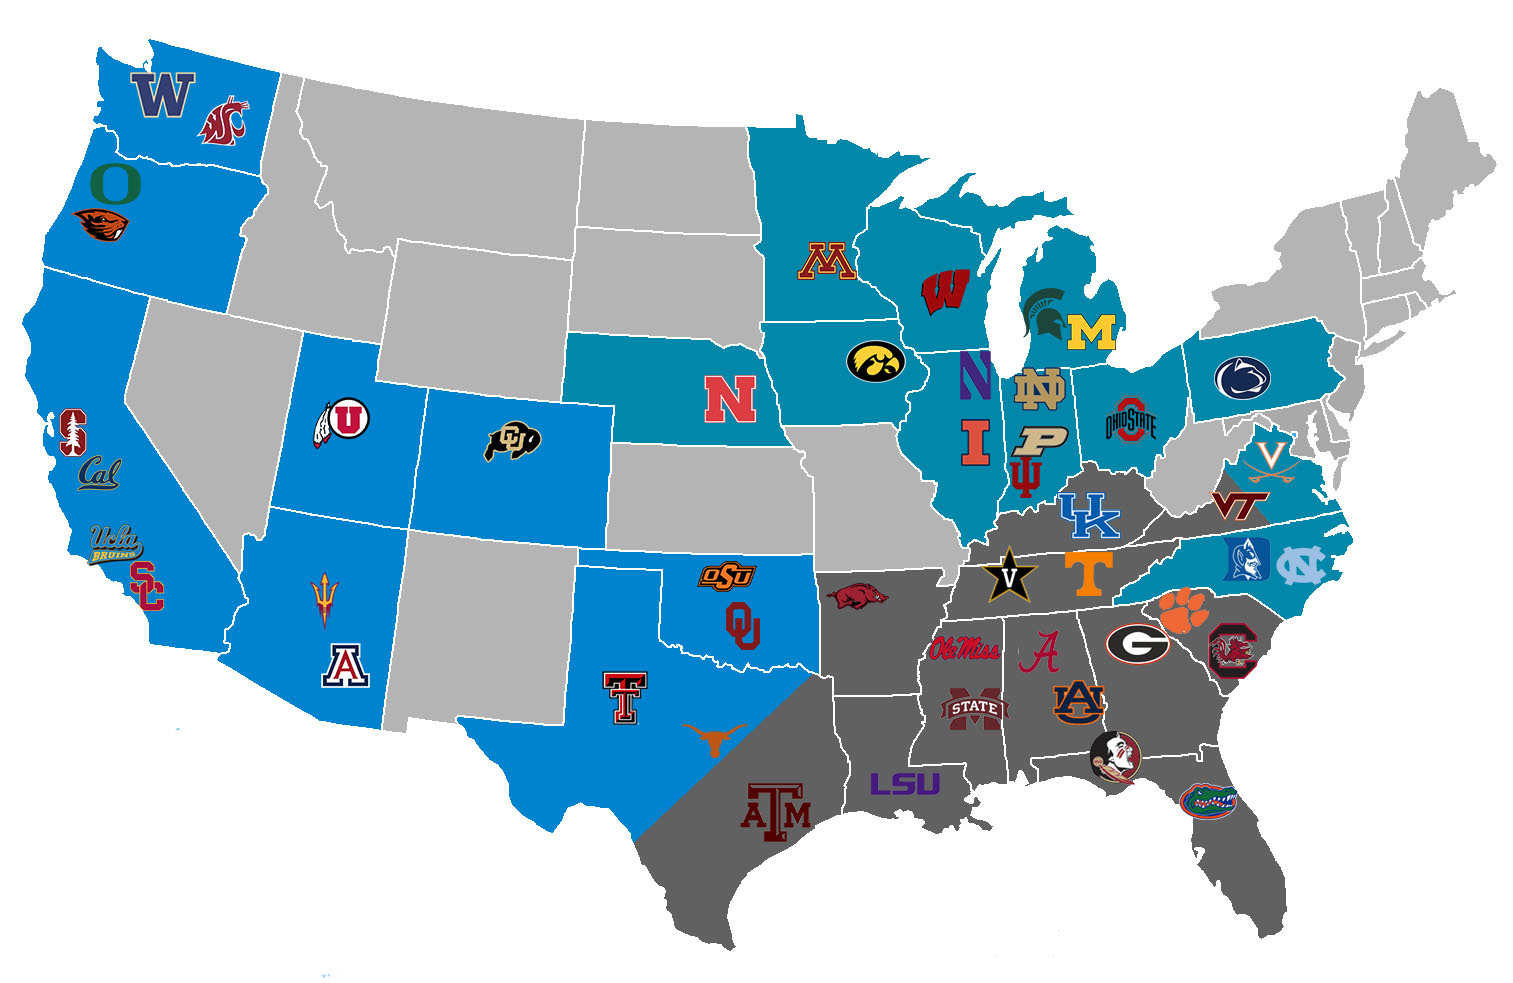 Redoing Realignment: The SEC, Big Ten and Pac-12 form 3